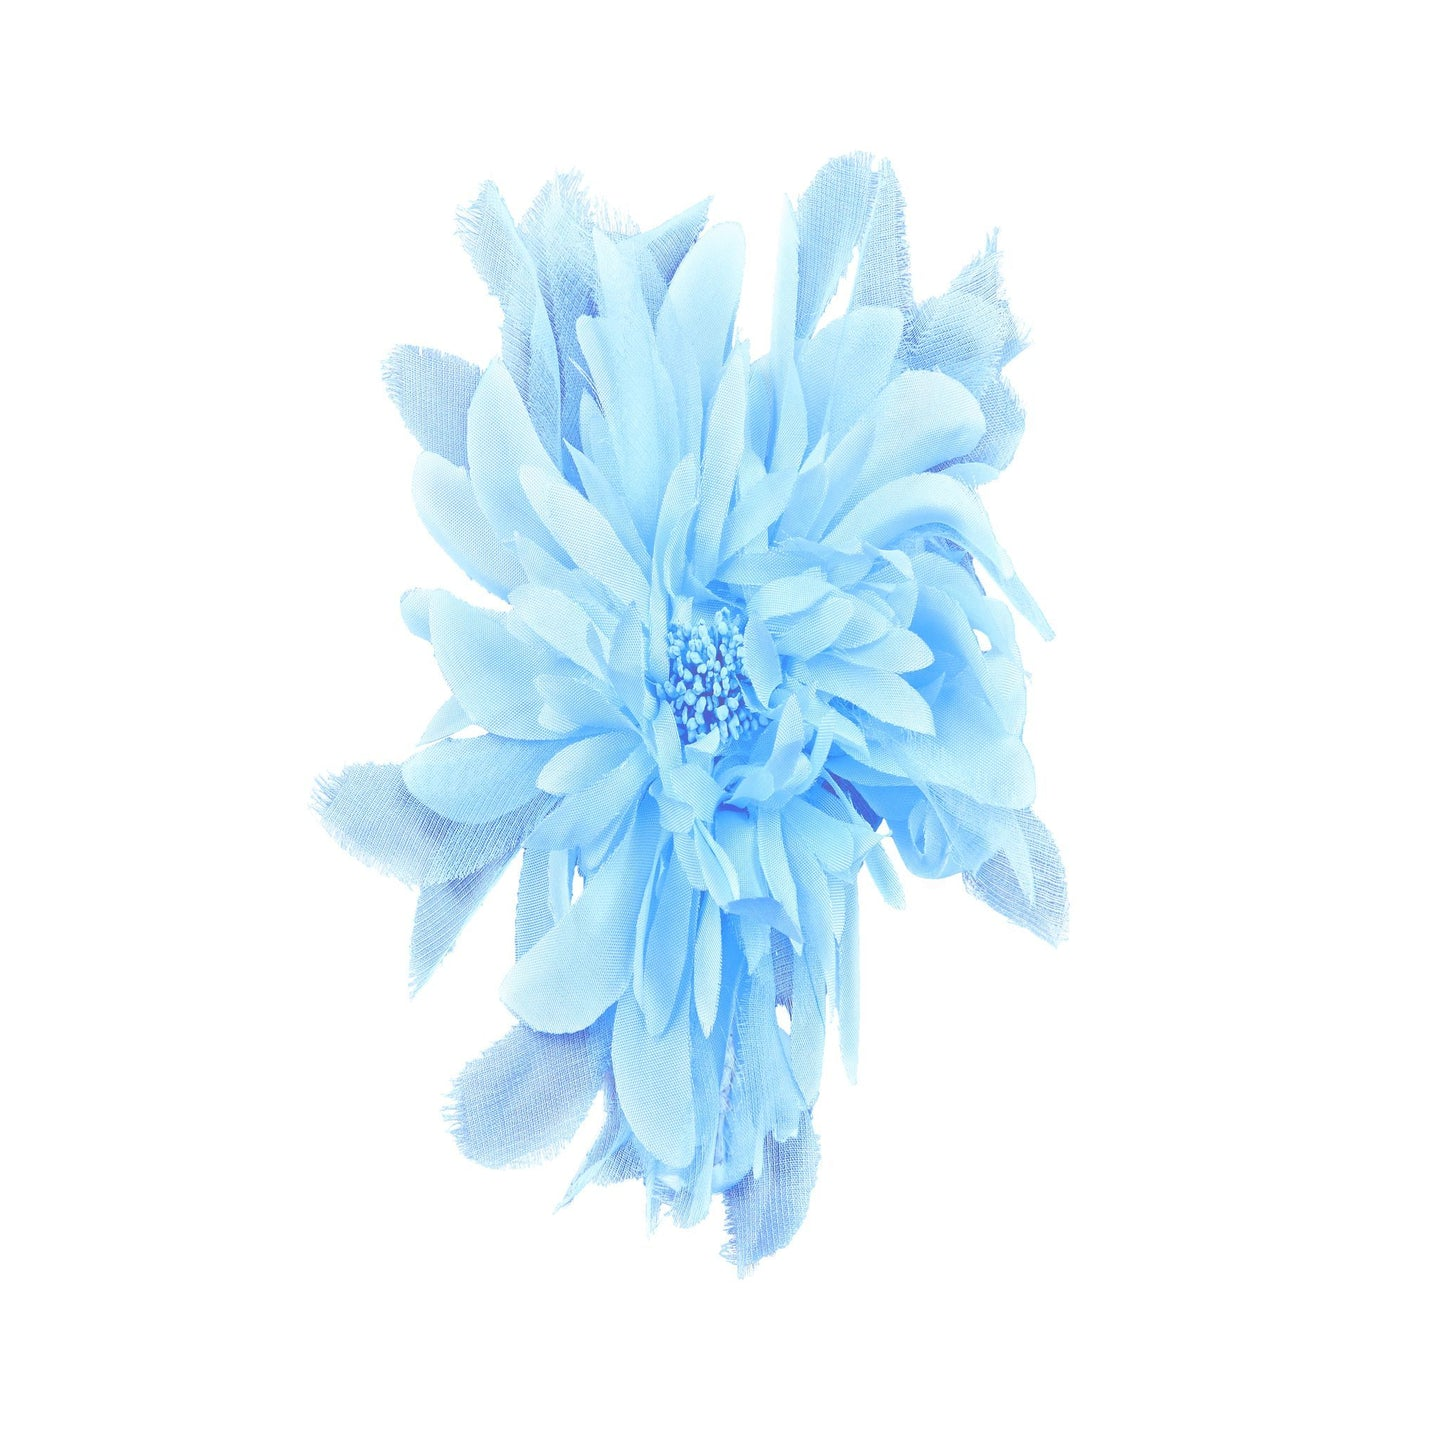 Taffeta And Organza Flower Corsage for Hats Fascinators and Millinery FL023